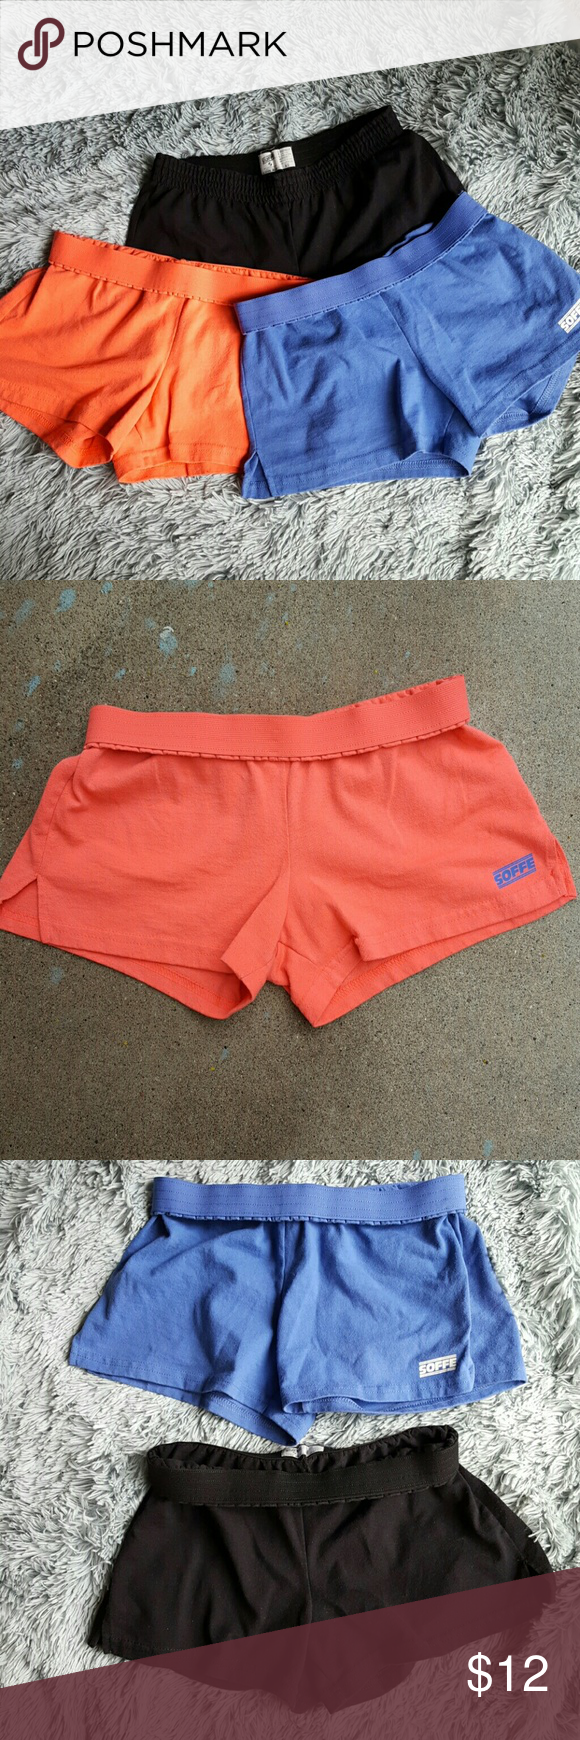 SOFFE Shorts bundle 2 SOFFE Shorts in size XS. All in really good condition. Only sign of wear is the faded tags. Soffe Shorts